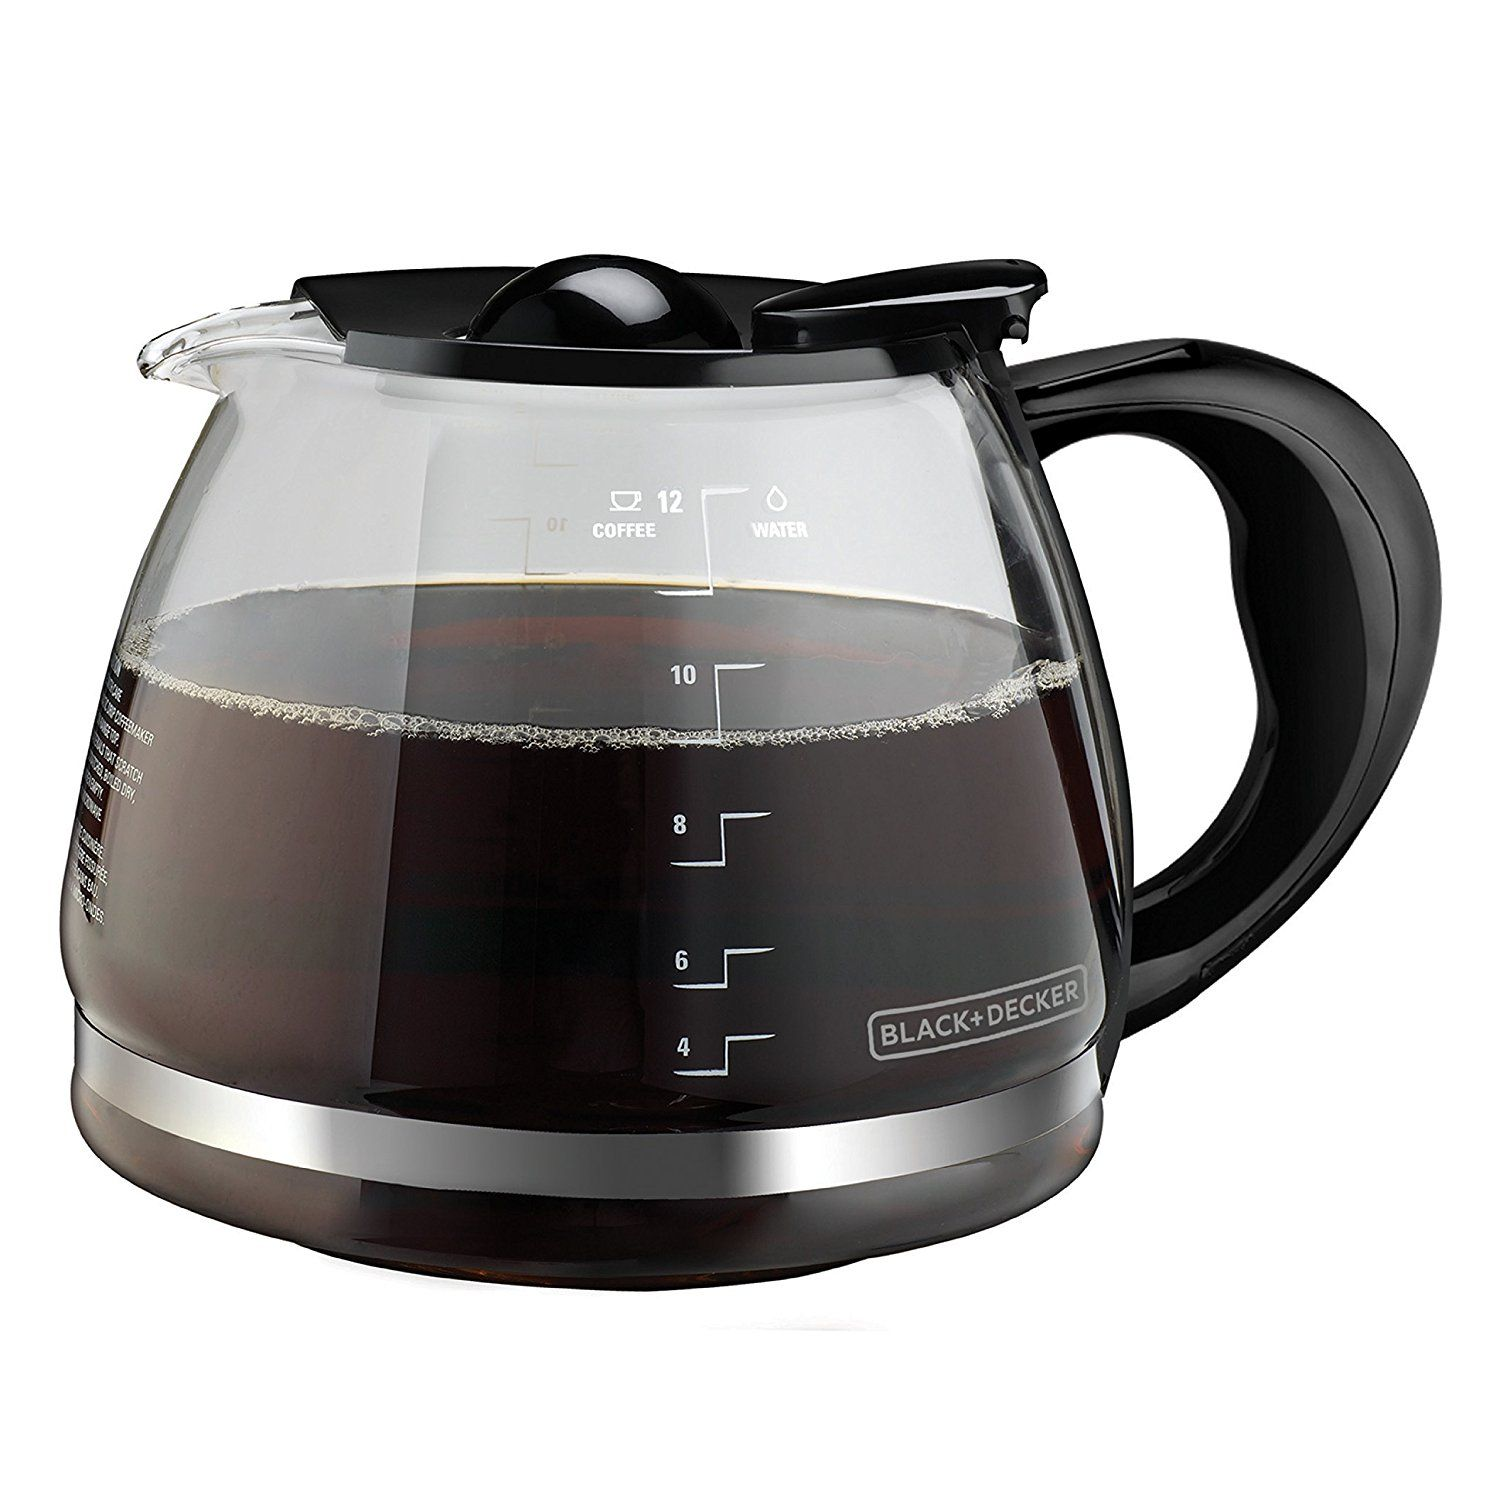 Blackdecker cup replacement carafe category coffee accessories